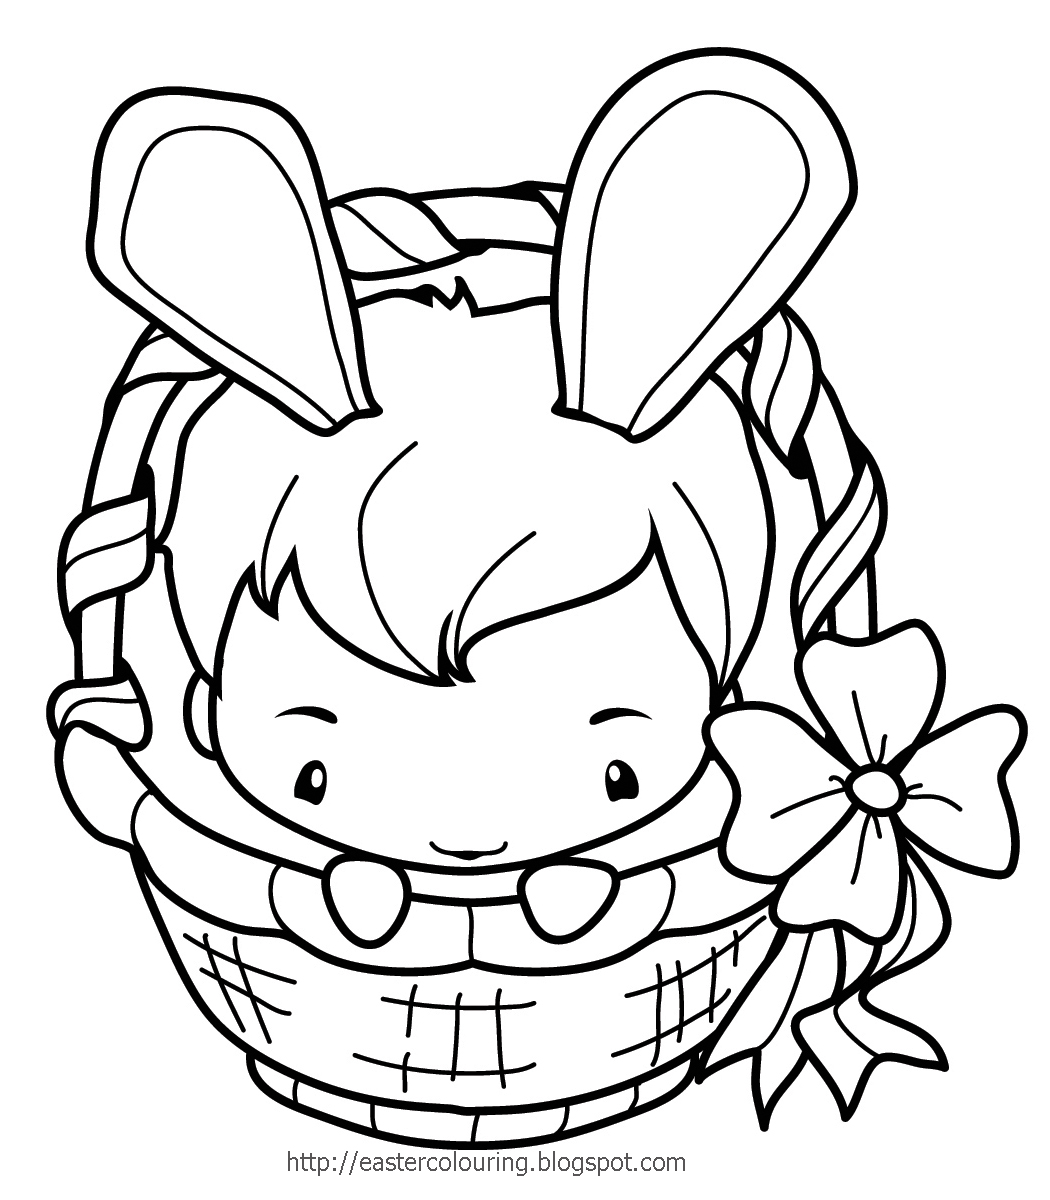 EASTER COLOURING EASTER BUNNY COLOURING IN PAGES